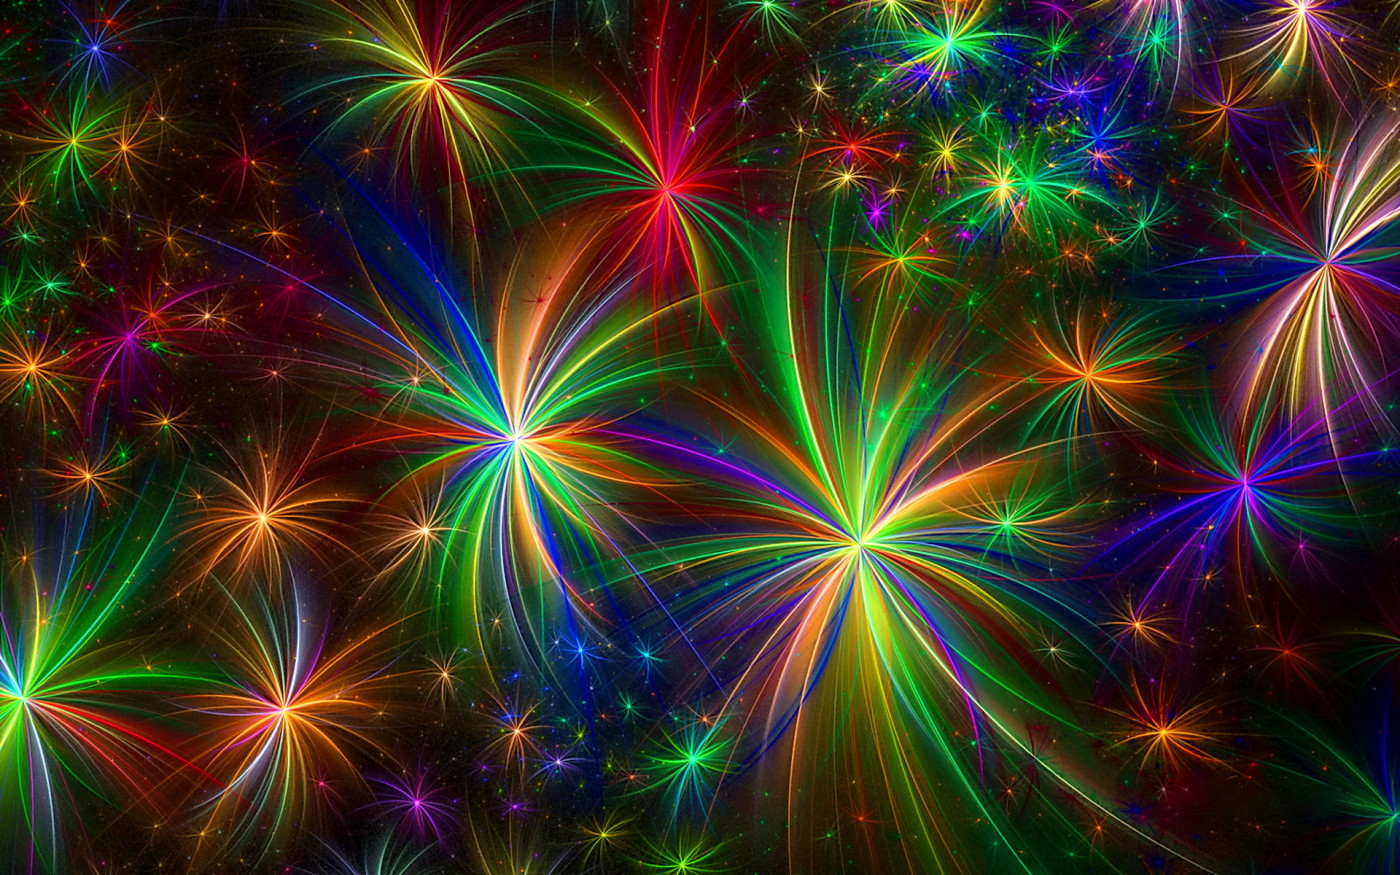 Fireworks-HD-Desktop-Backgrounds-Images